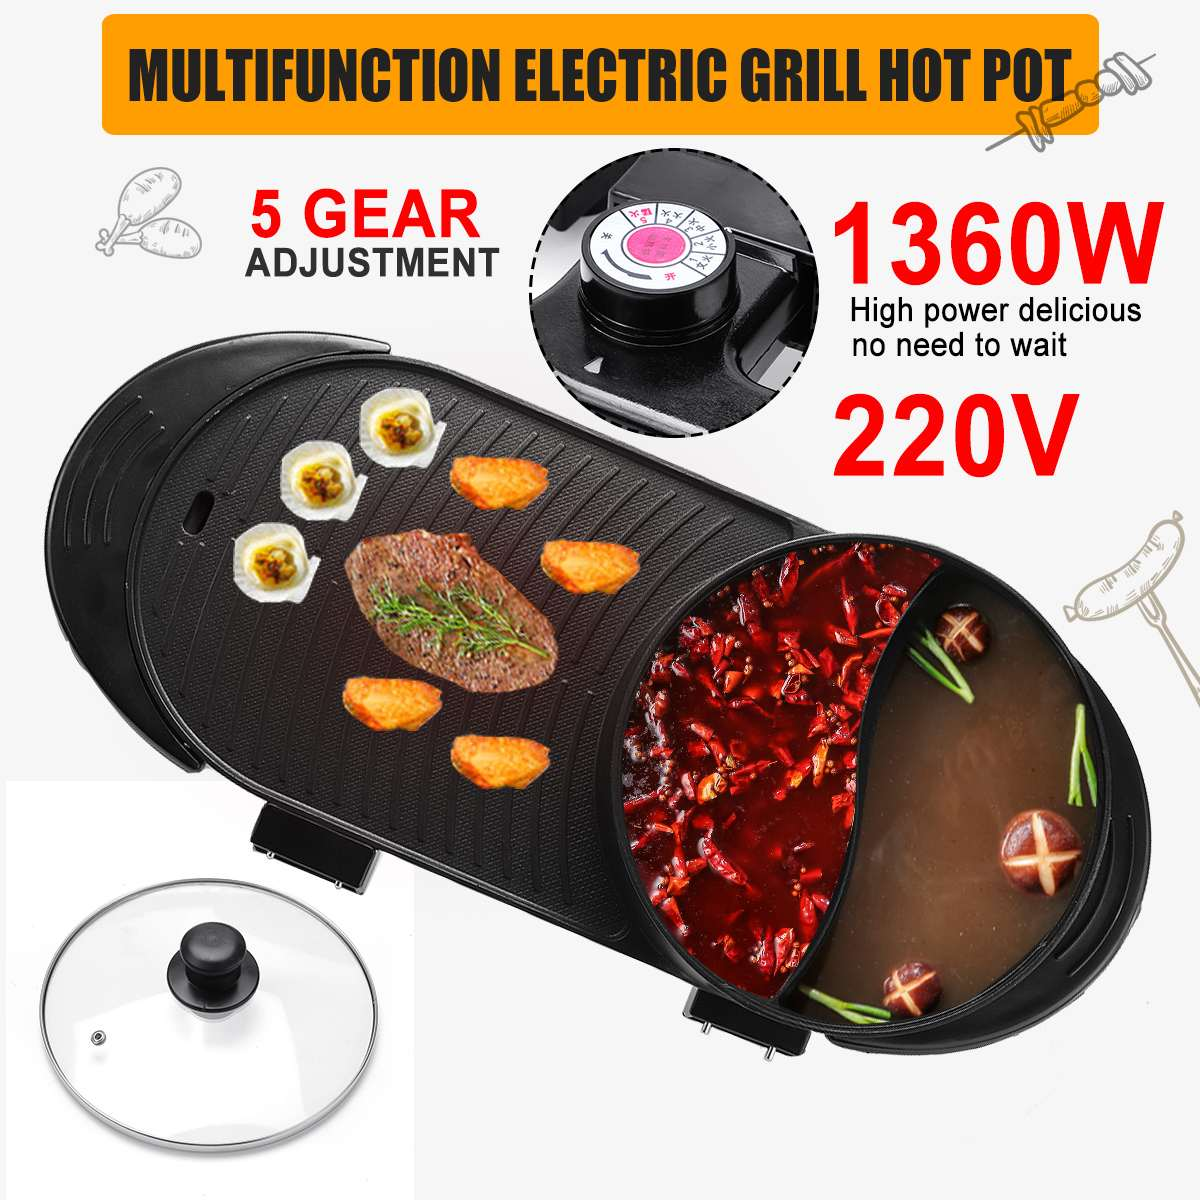 1360W Multifunction Electric Griddles 2in1 Electric Grill & Hot Pot Baking Flat Pan Hotpot Smokeless Grill BBQ Griddle Plate kitchen equipment smokeless energy saving stainless steel electric induction griddle machine electrical contact grill